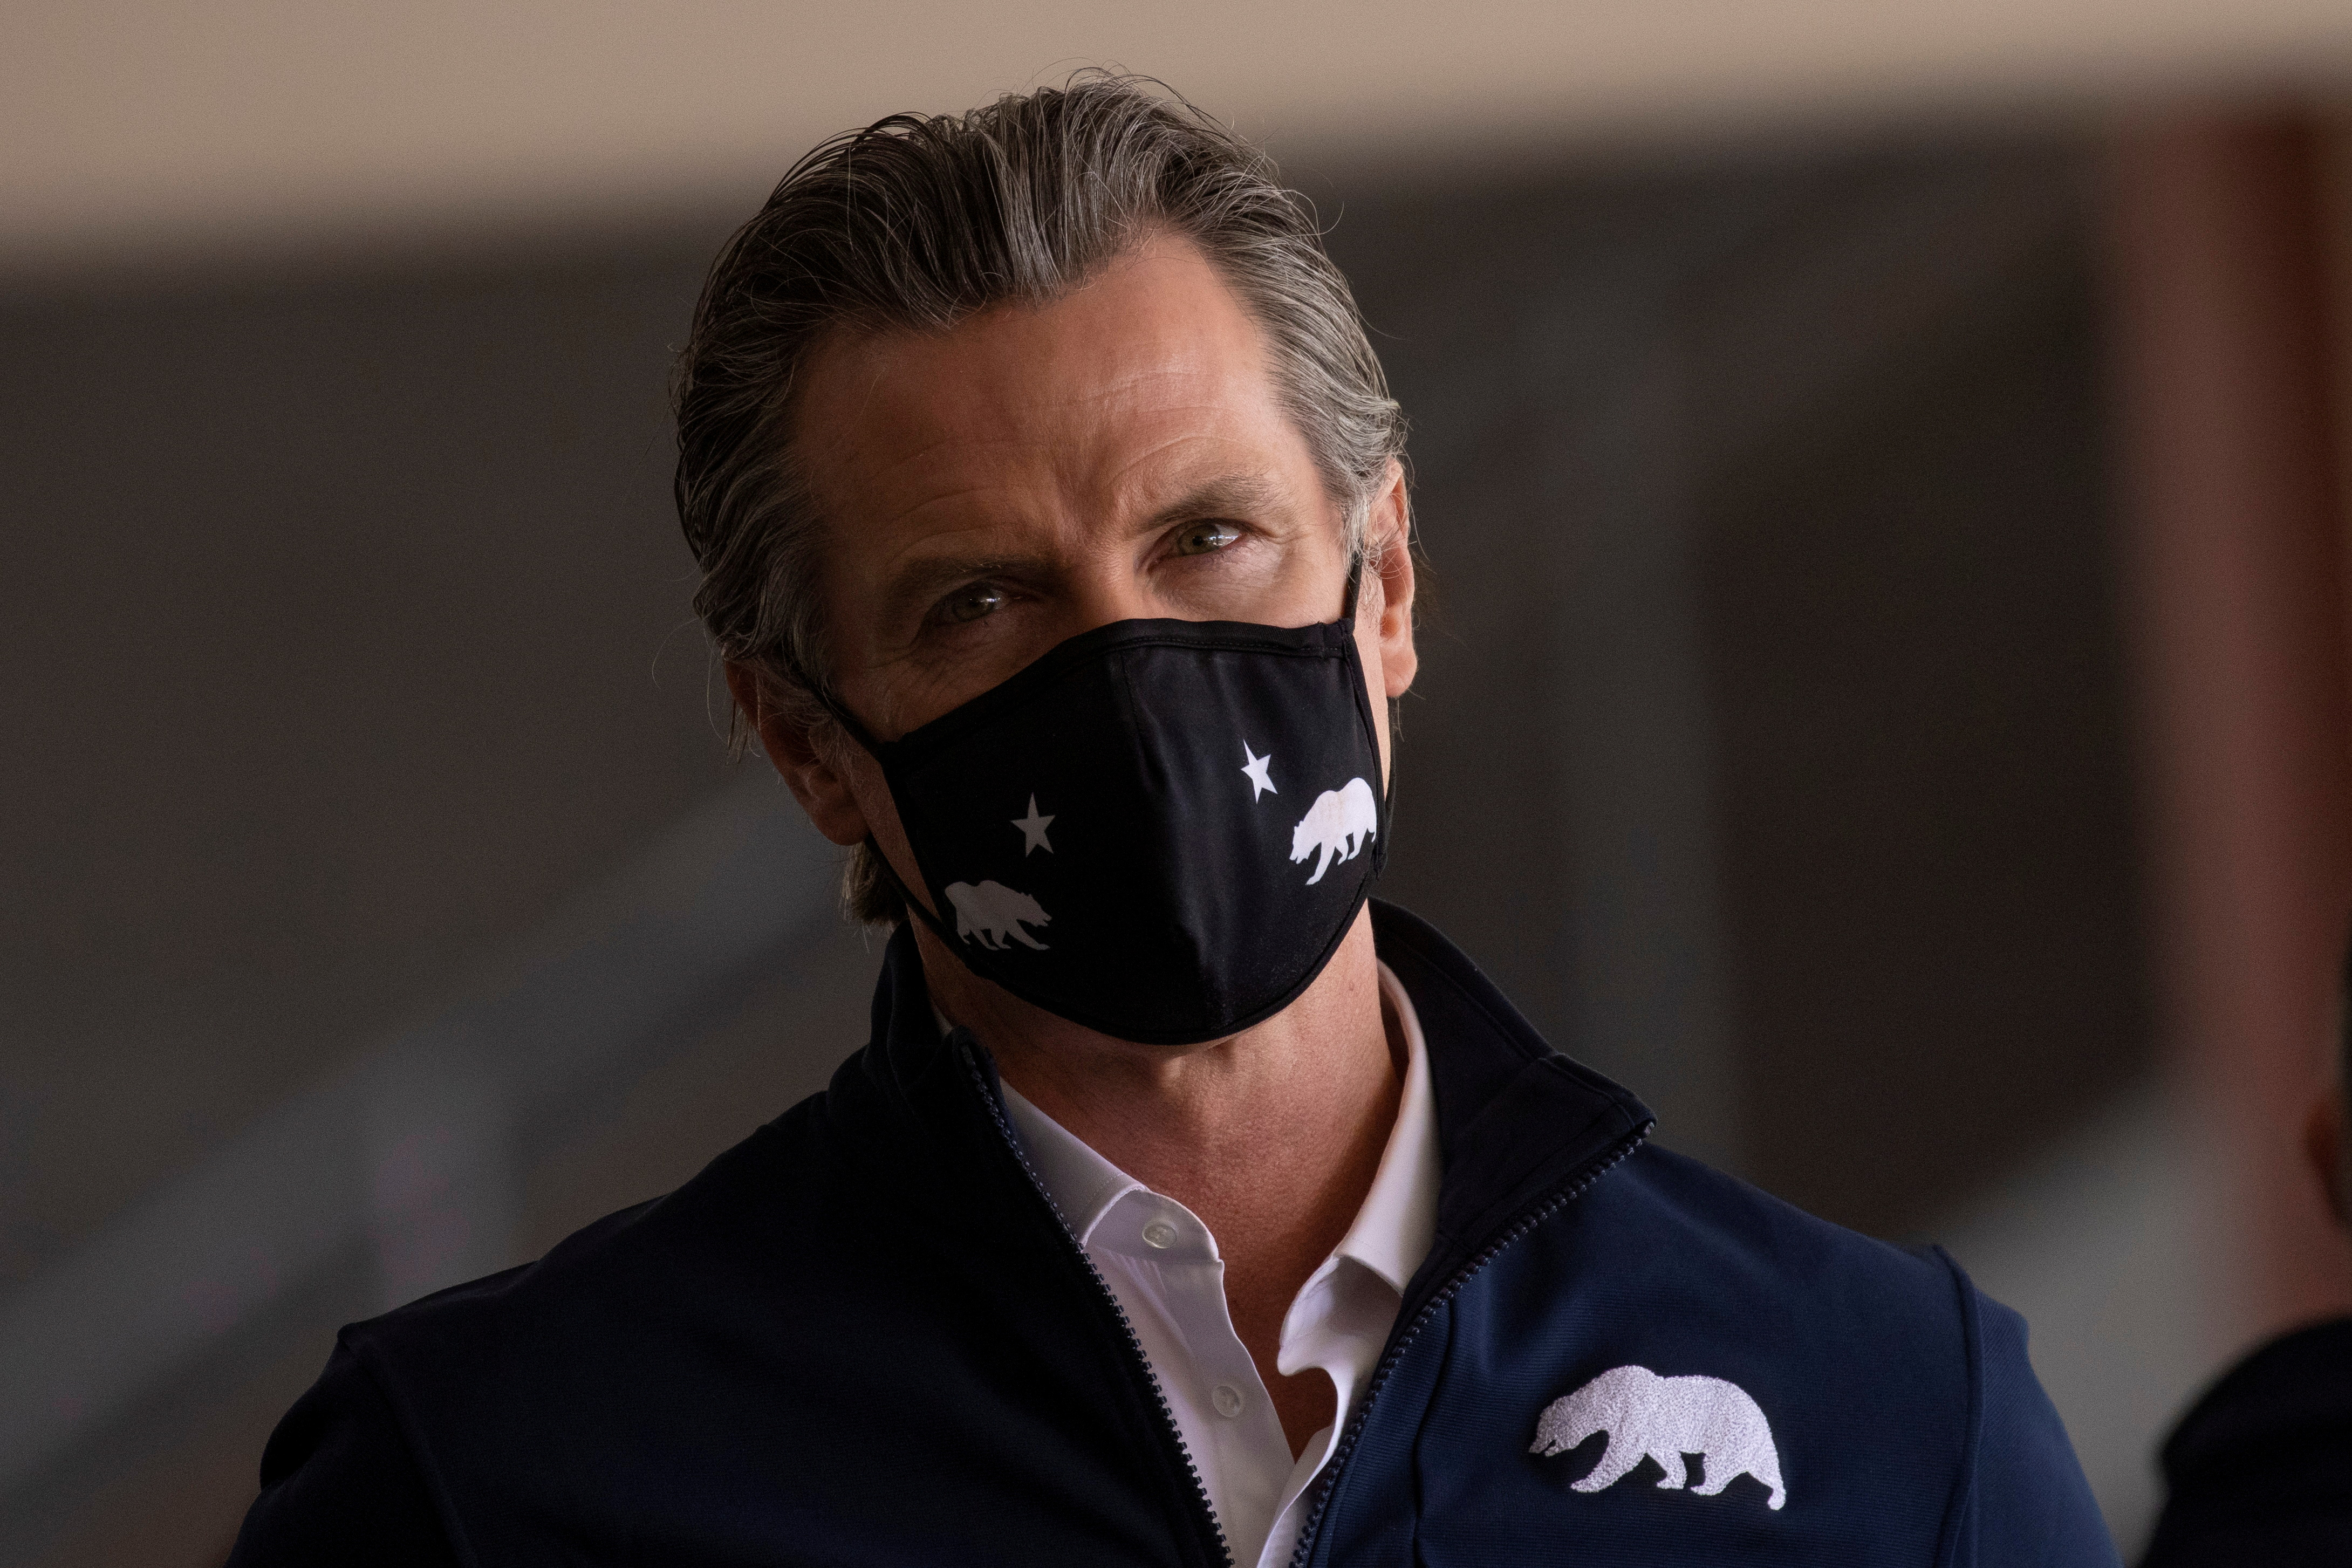 California Governor Gavin Newsom attends the opening of the country's first federal and state operated community vaccination site during the outbreak of the coronavirus disease (COVID-19) in Los Angeles, California, U.S., February 16, 2021.       REUTERS/Mike Blake